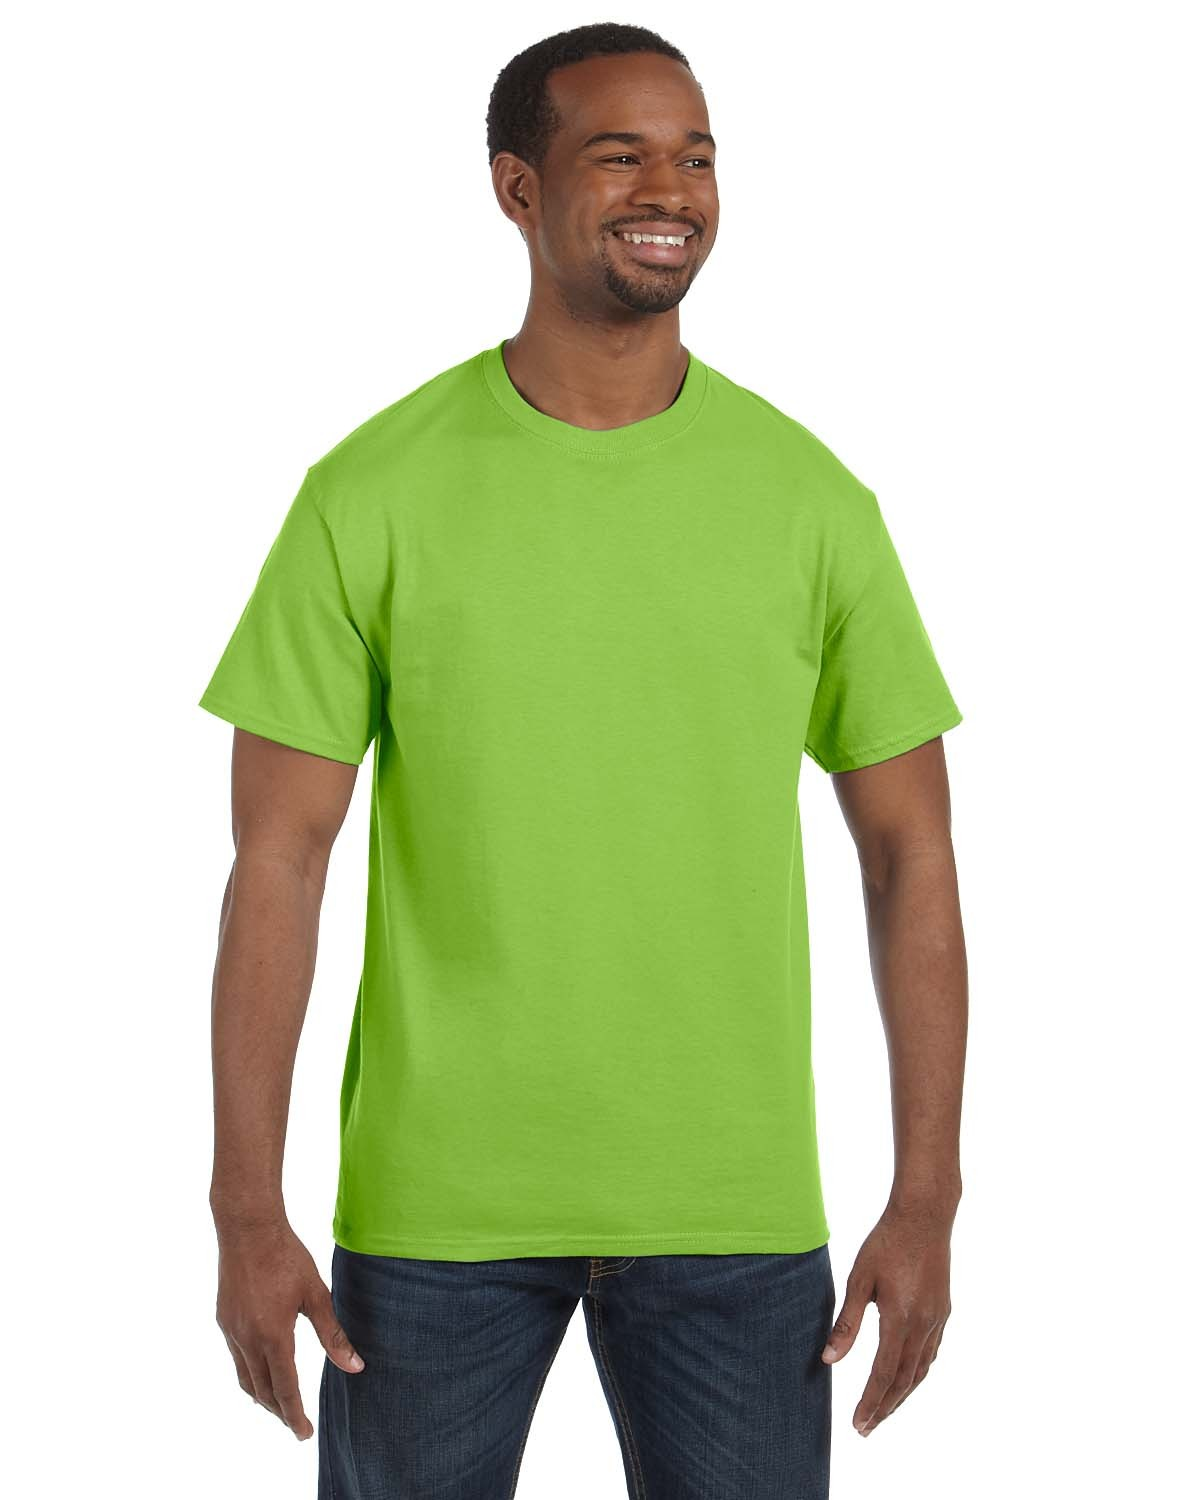 5250T Hanes LIME